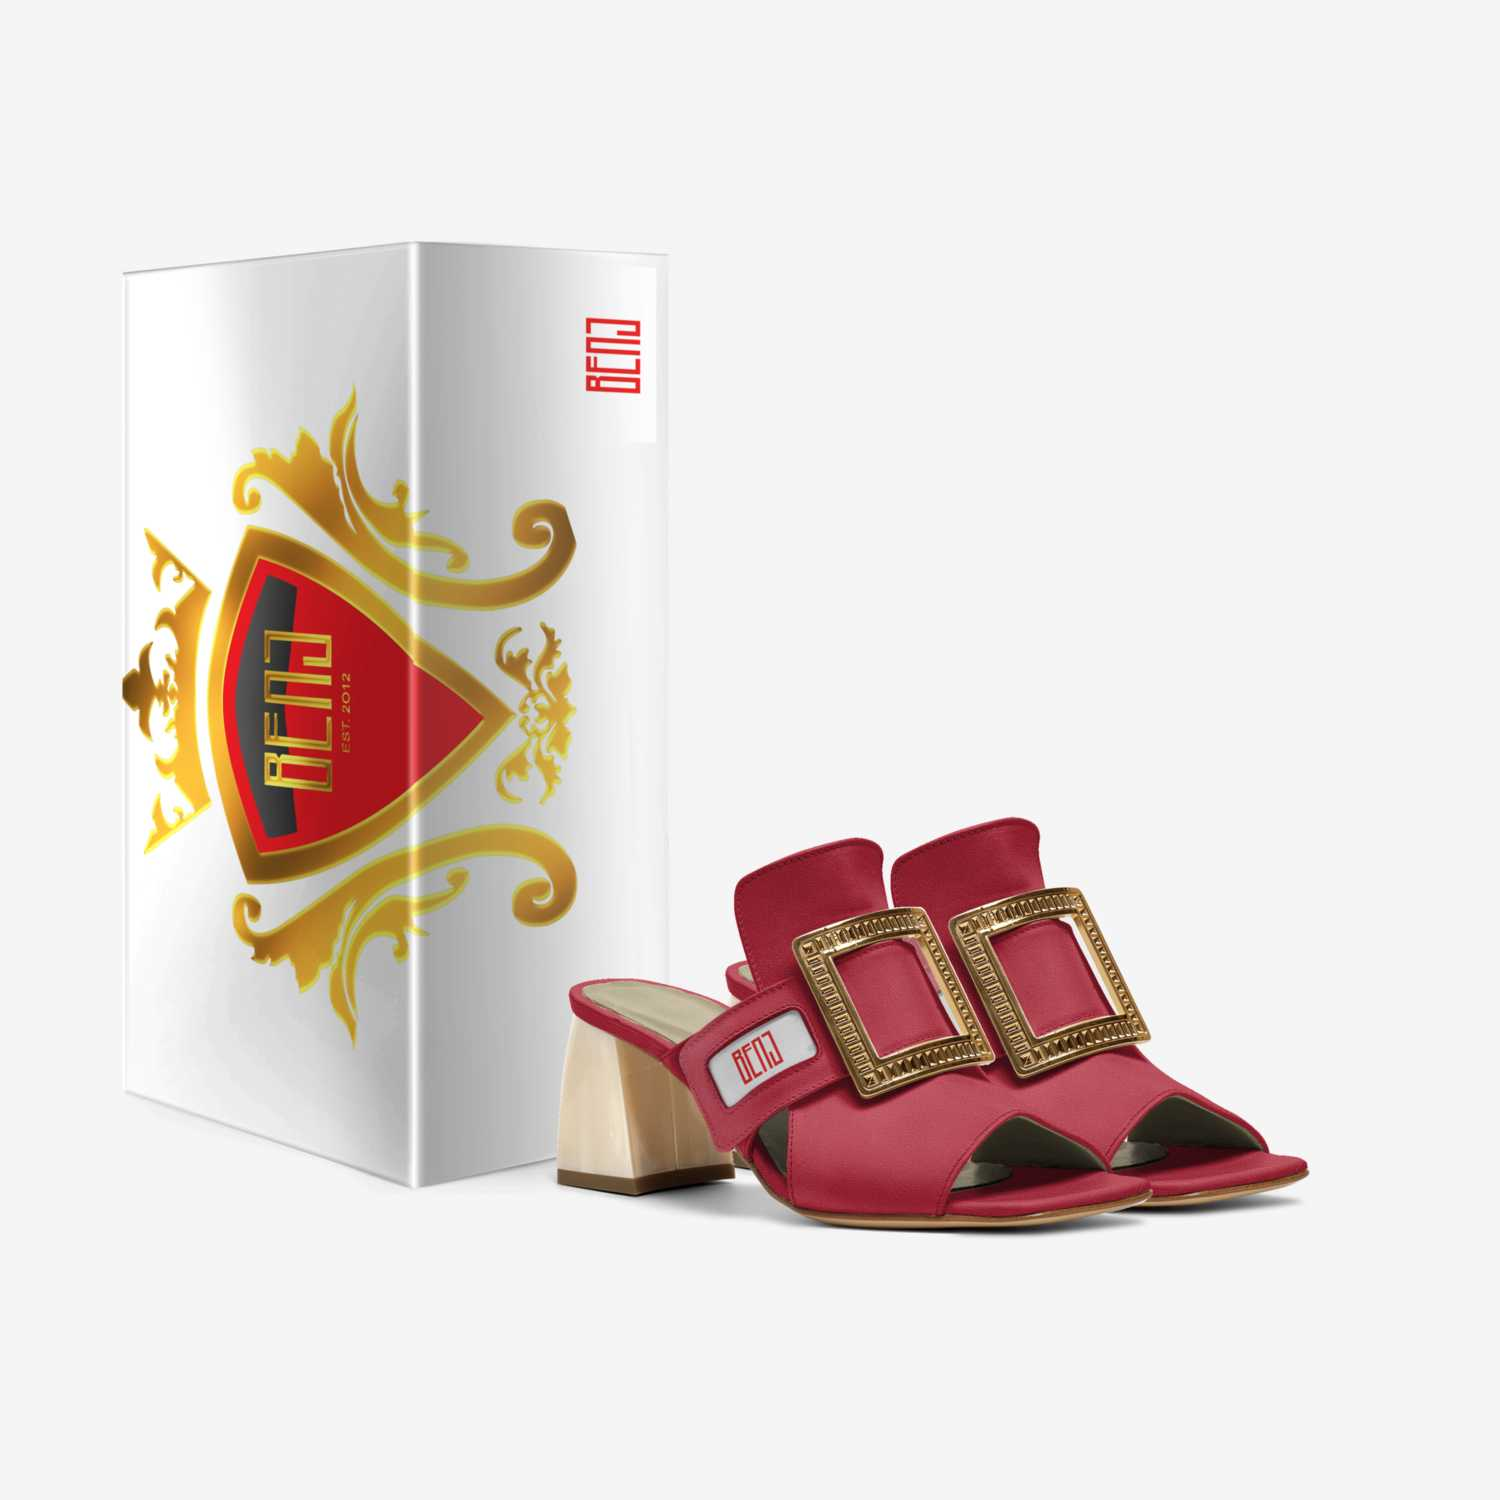 BENJ custom made in Italy shoes by BENJ-URBAN APPAREL. SINCE.2012 | Box view